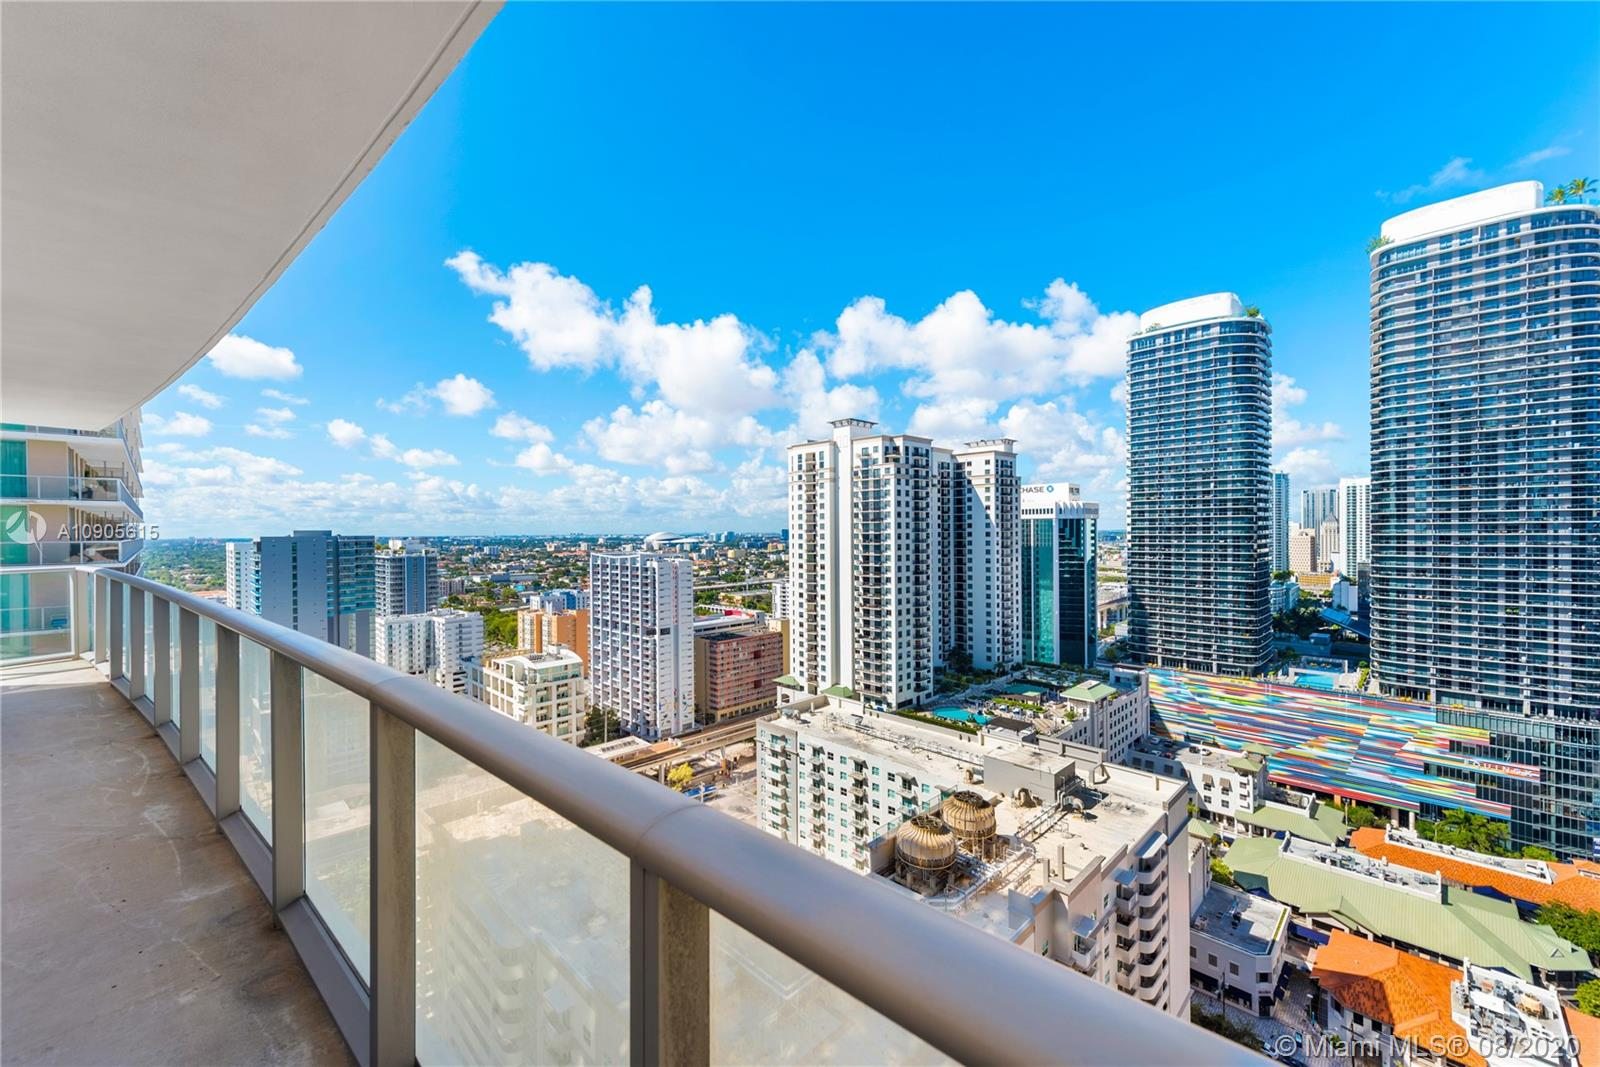 Best priced 2 bed, 2 bath unit at Millecento Brickell! This 2015 condo created by Carlos Ott and designed by Pininfarina features a spacious floor-plan, open skyline views with lots of natural light, impact resistant windows and doors, a large balcony and Italian cabinetry. 1 Assigned Parking on 5th Floor and Valet Parking available for guests or second spot. Wifi with AT&T included. Resort Style Amenities include a rooftop pool, larger pool on 9th Floor, Fitness Center, Kids Room, Club Room with Billiards table and room to entertain, theatre and sauna. Enjoy the Brickell lifestyle - centrally located to restaurants, shops, supermarkets, Mary Brickell Village, Brickell City Centre, Metrorail & Metromover.